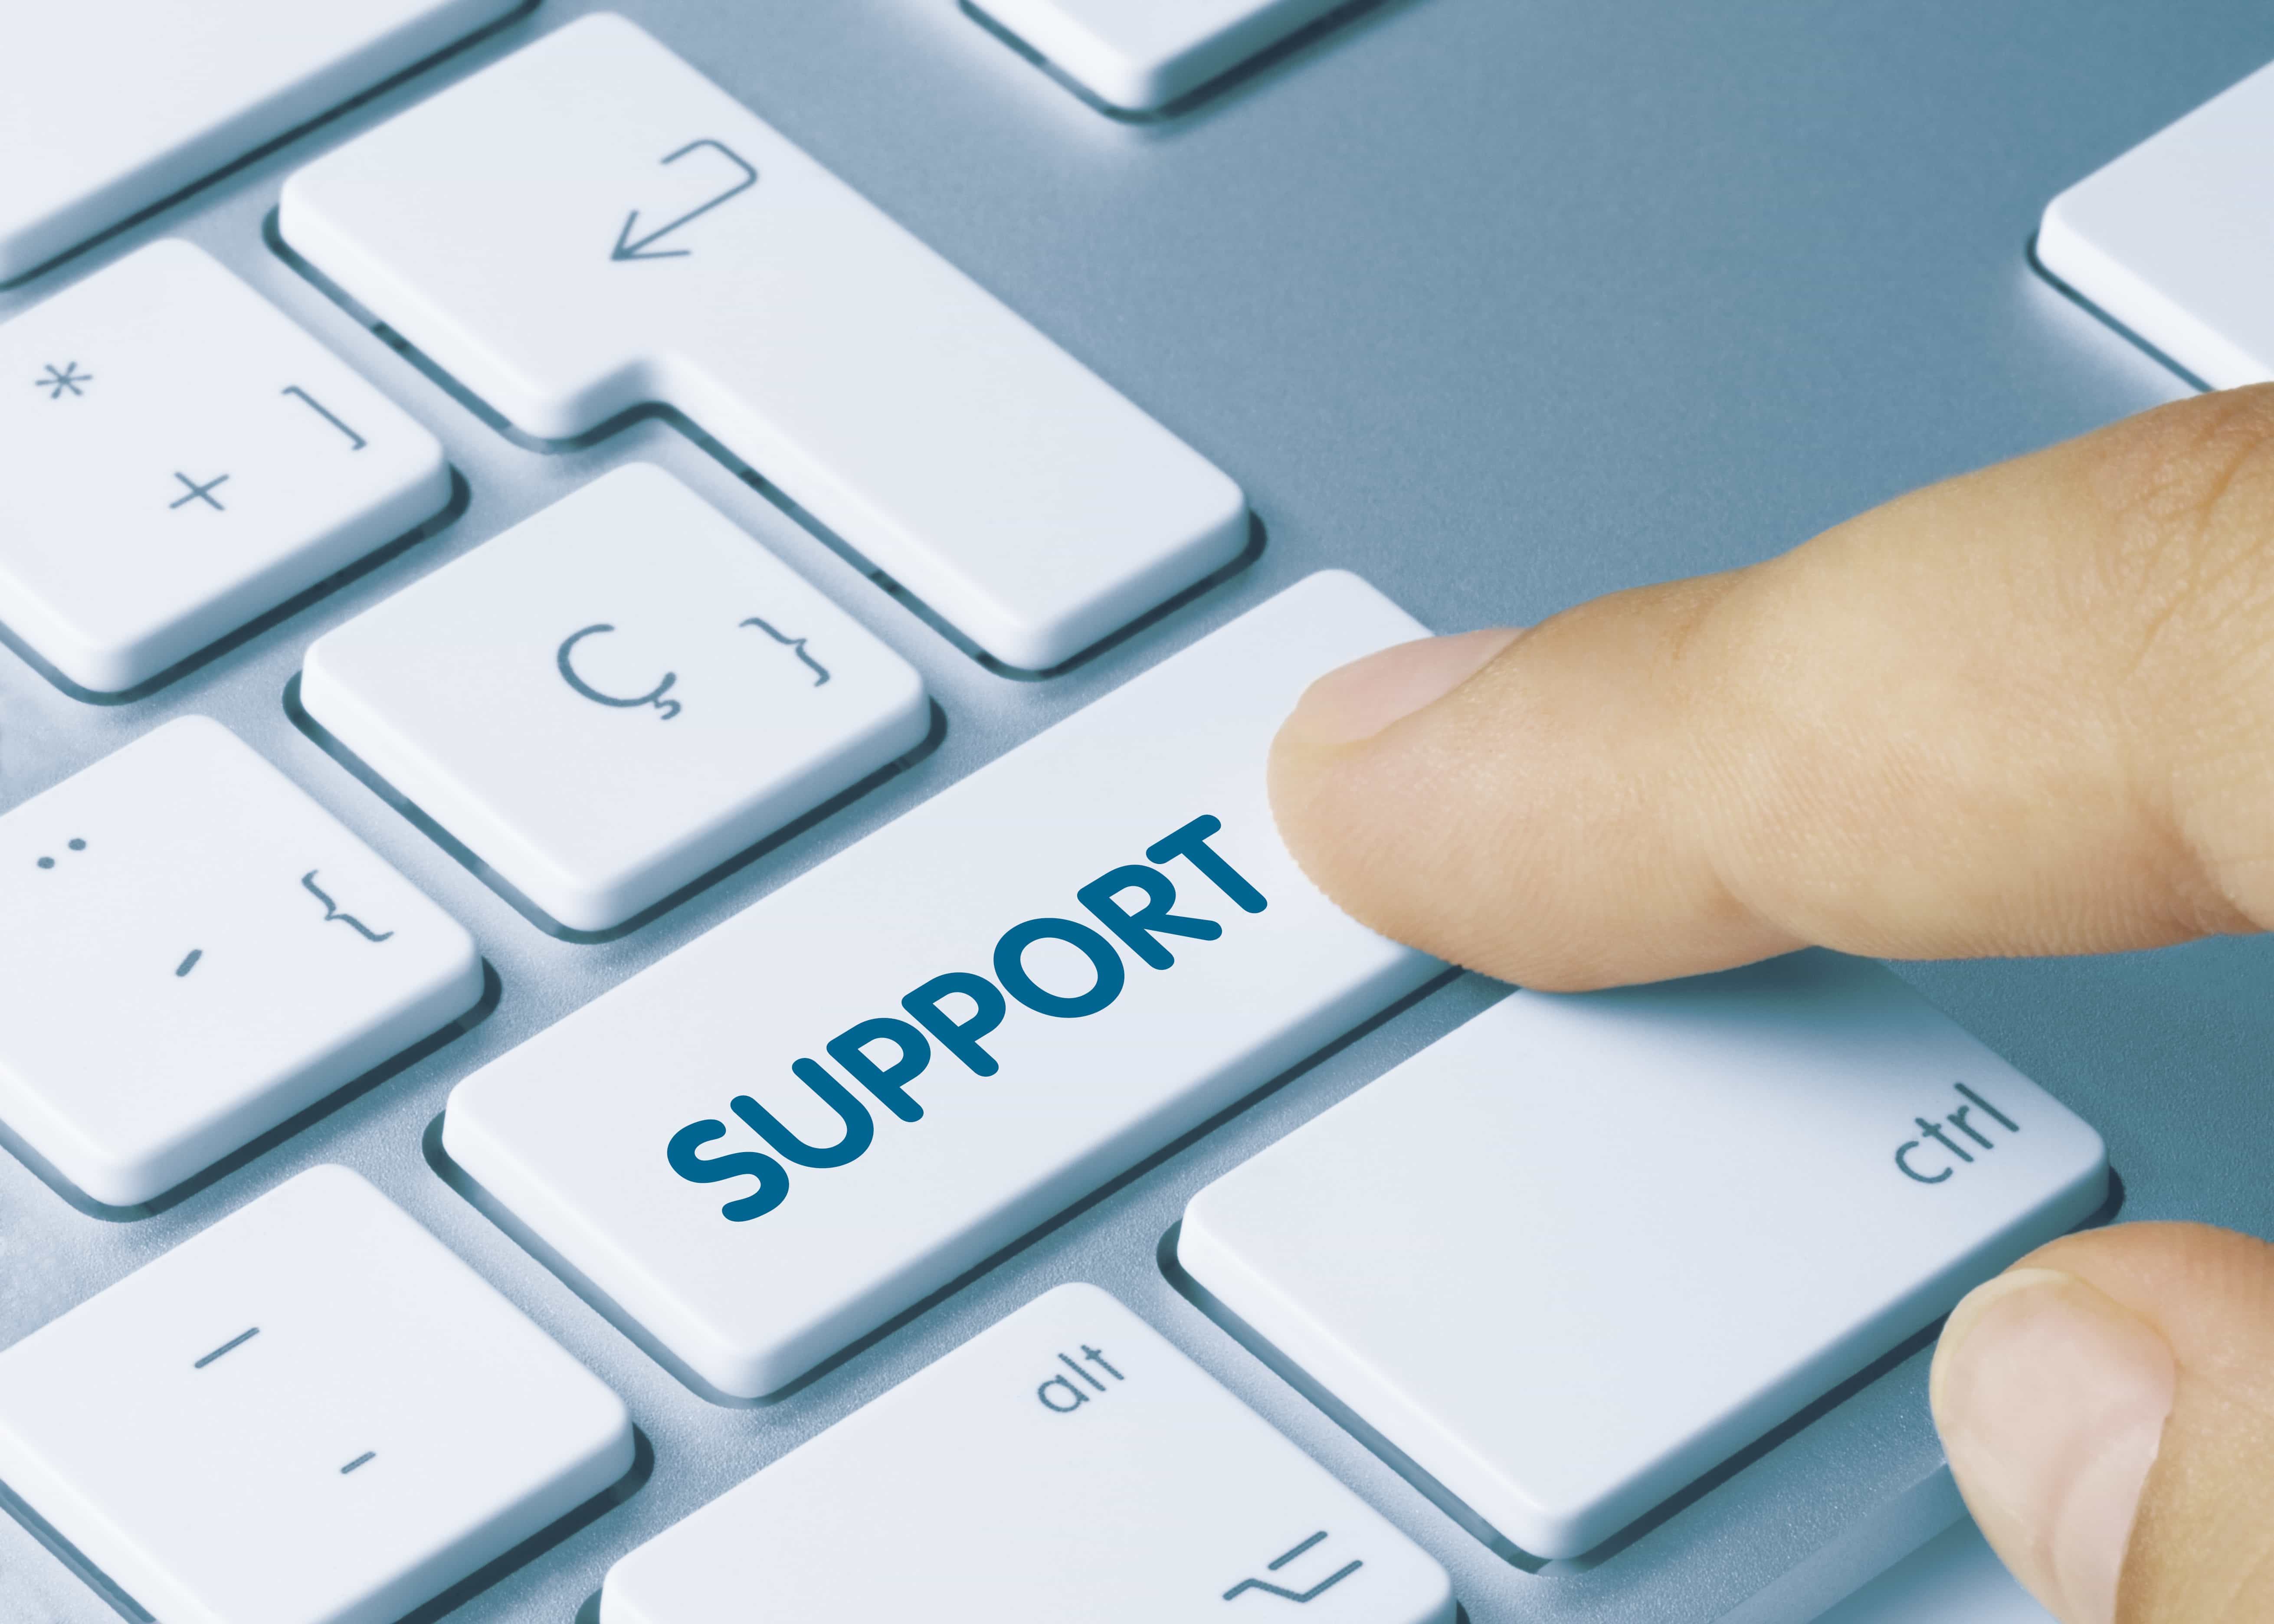 support services, middleware support, Implementing, Monitoring, Maintaining, Oracle, Environments, RAC, Enterprise, DR, MSP, Support